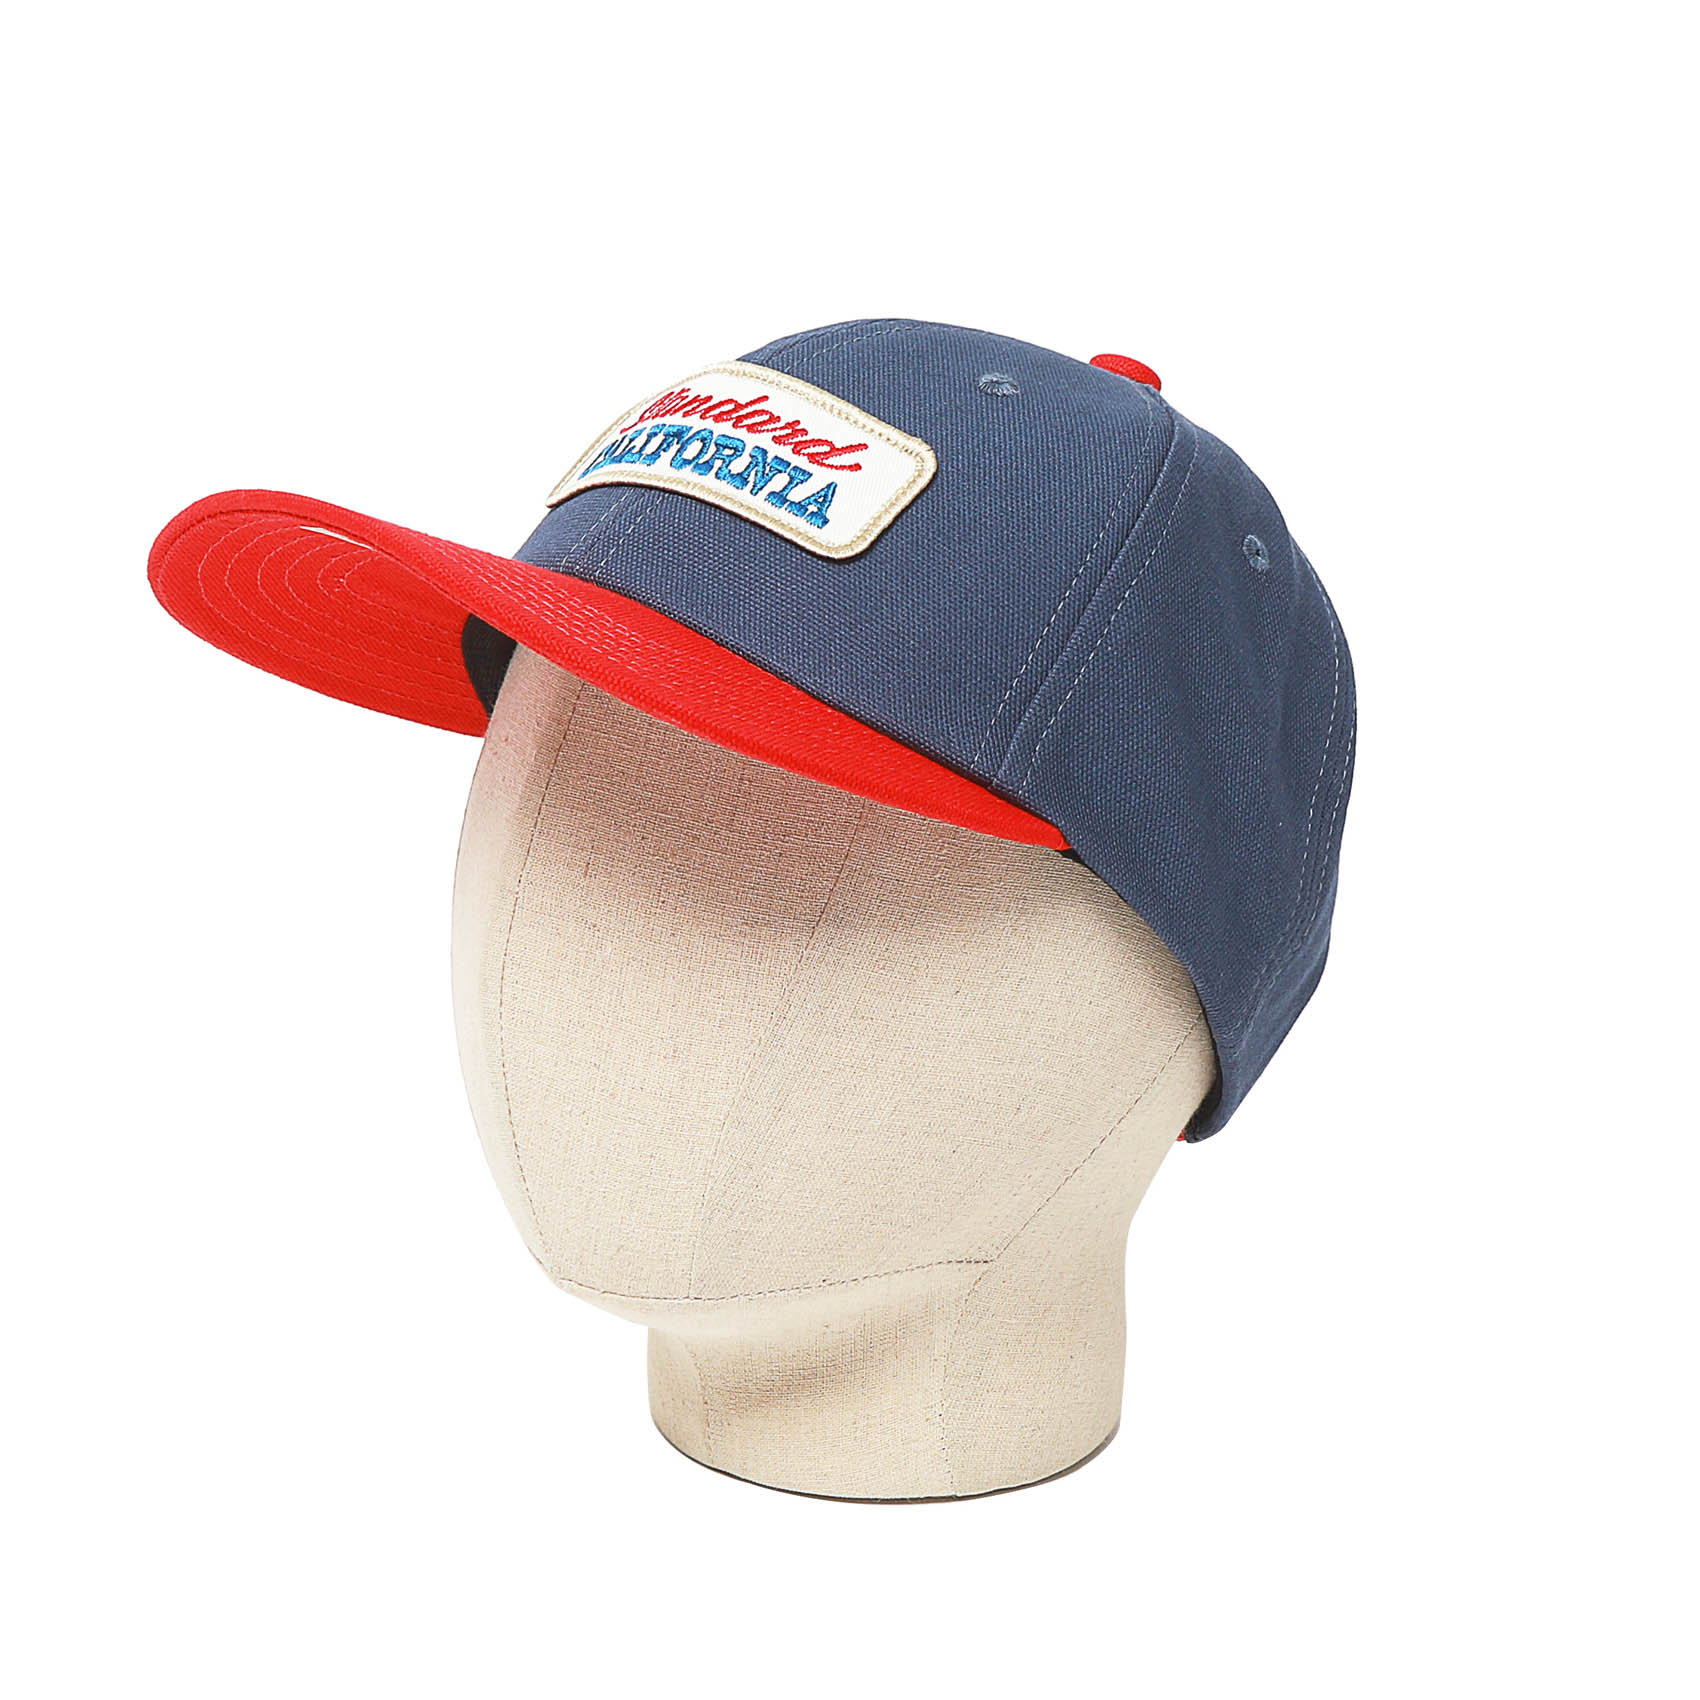 LOGO TWILL CAP - NAVY / RED